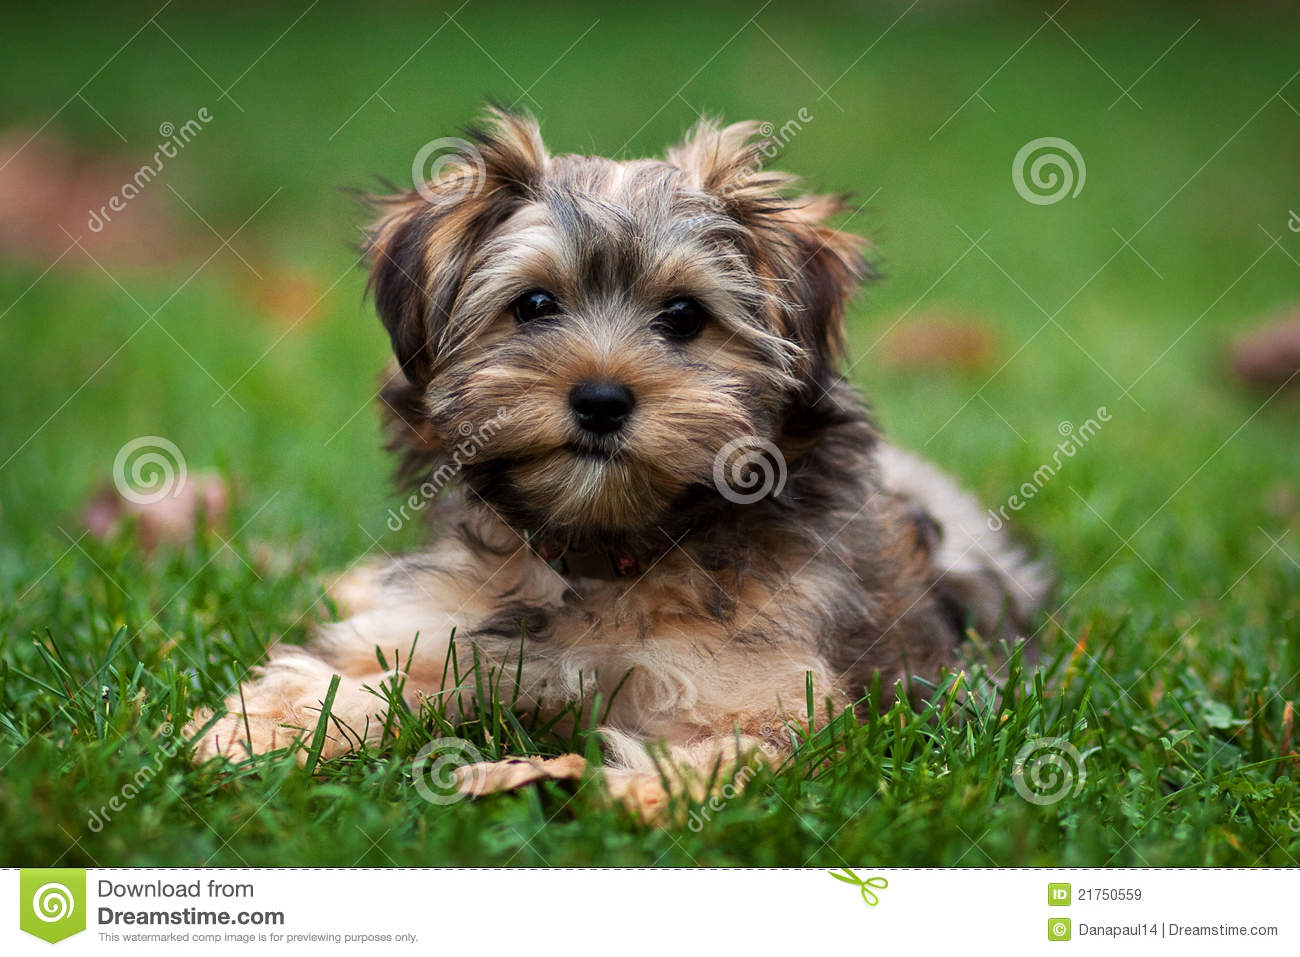 yorkie and shih tzu mix price yorkie and shih tzu mixed puppy stock image image of 5051